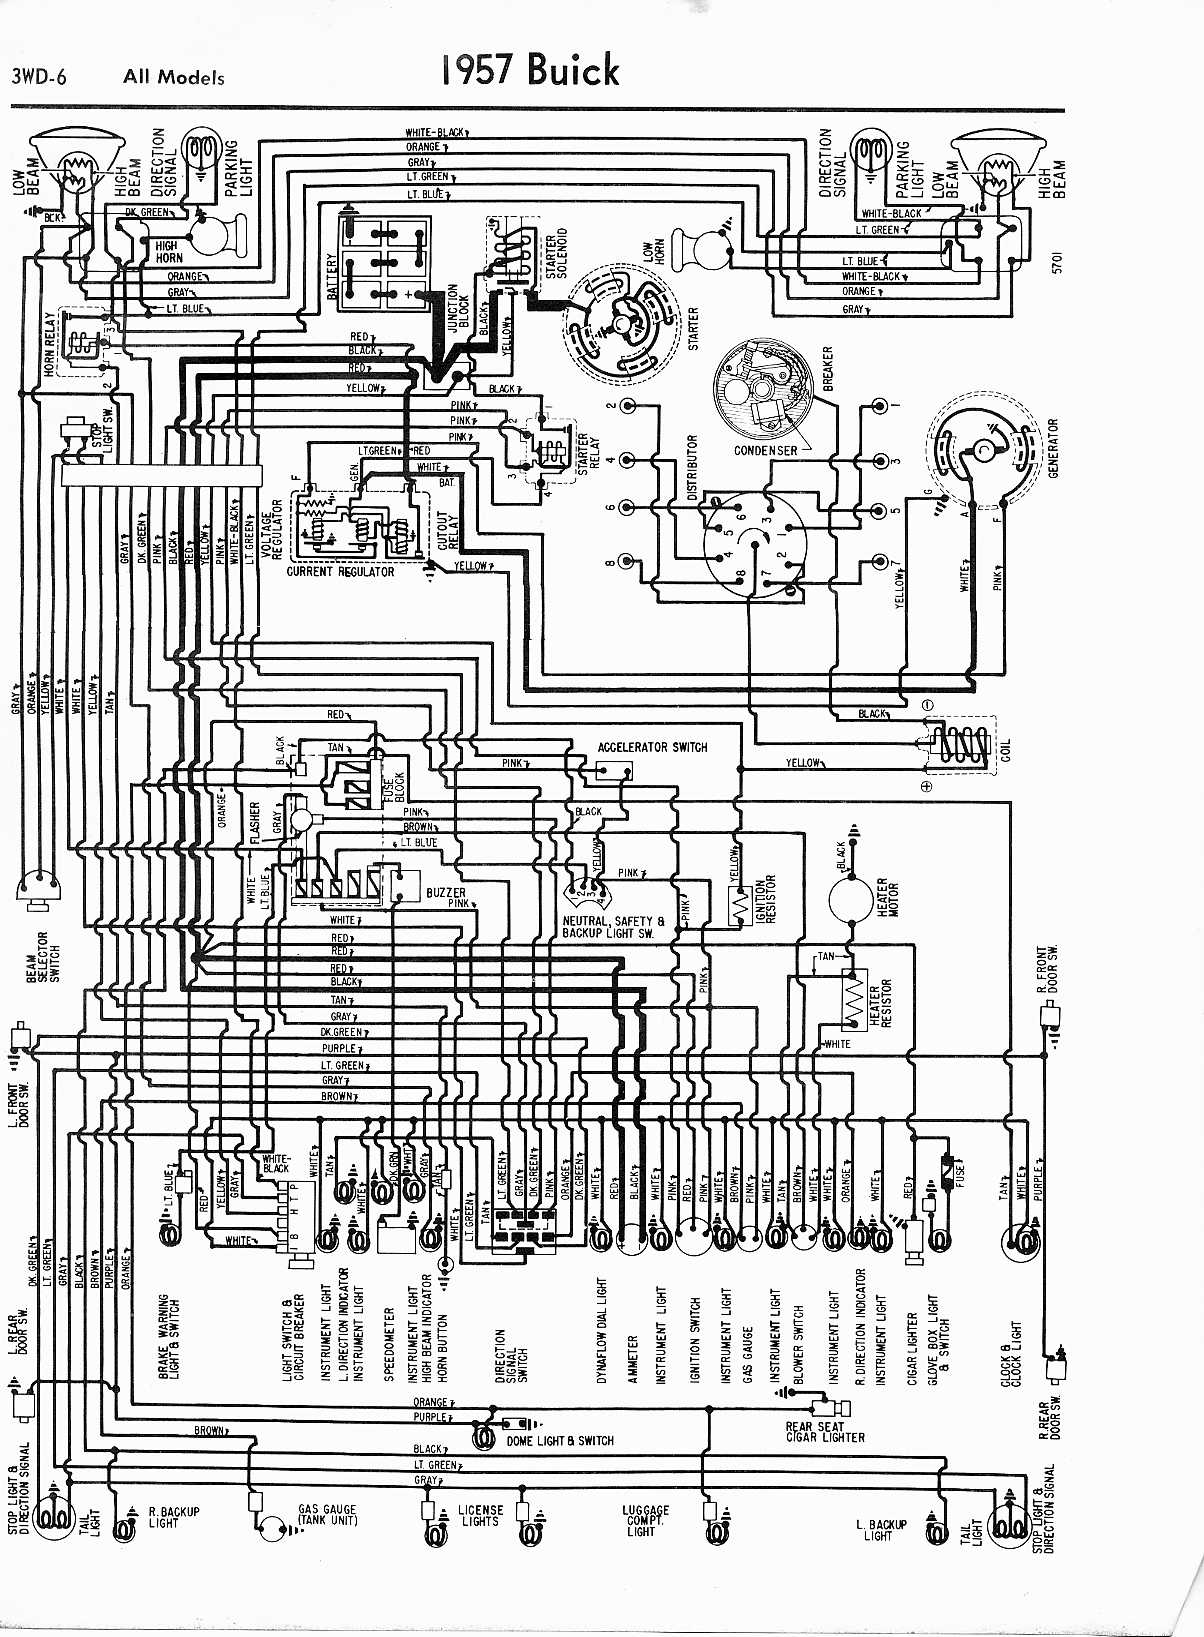 1989 Buick Riviera Wiring Diagram Smart Diagrams Park Avenue 1985 Electra Fuse Circuit Symbols U2022 Rh Veturecapitaltrust Co 2002 1972 Skylark